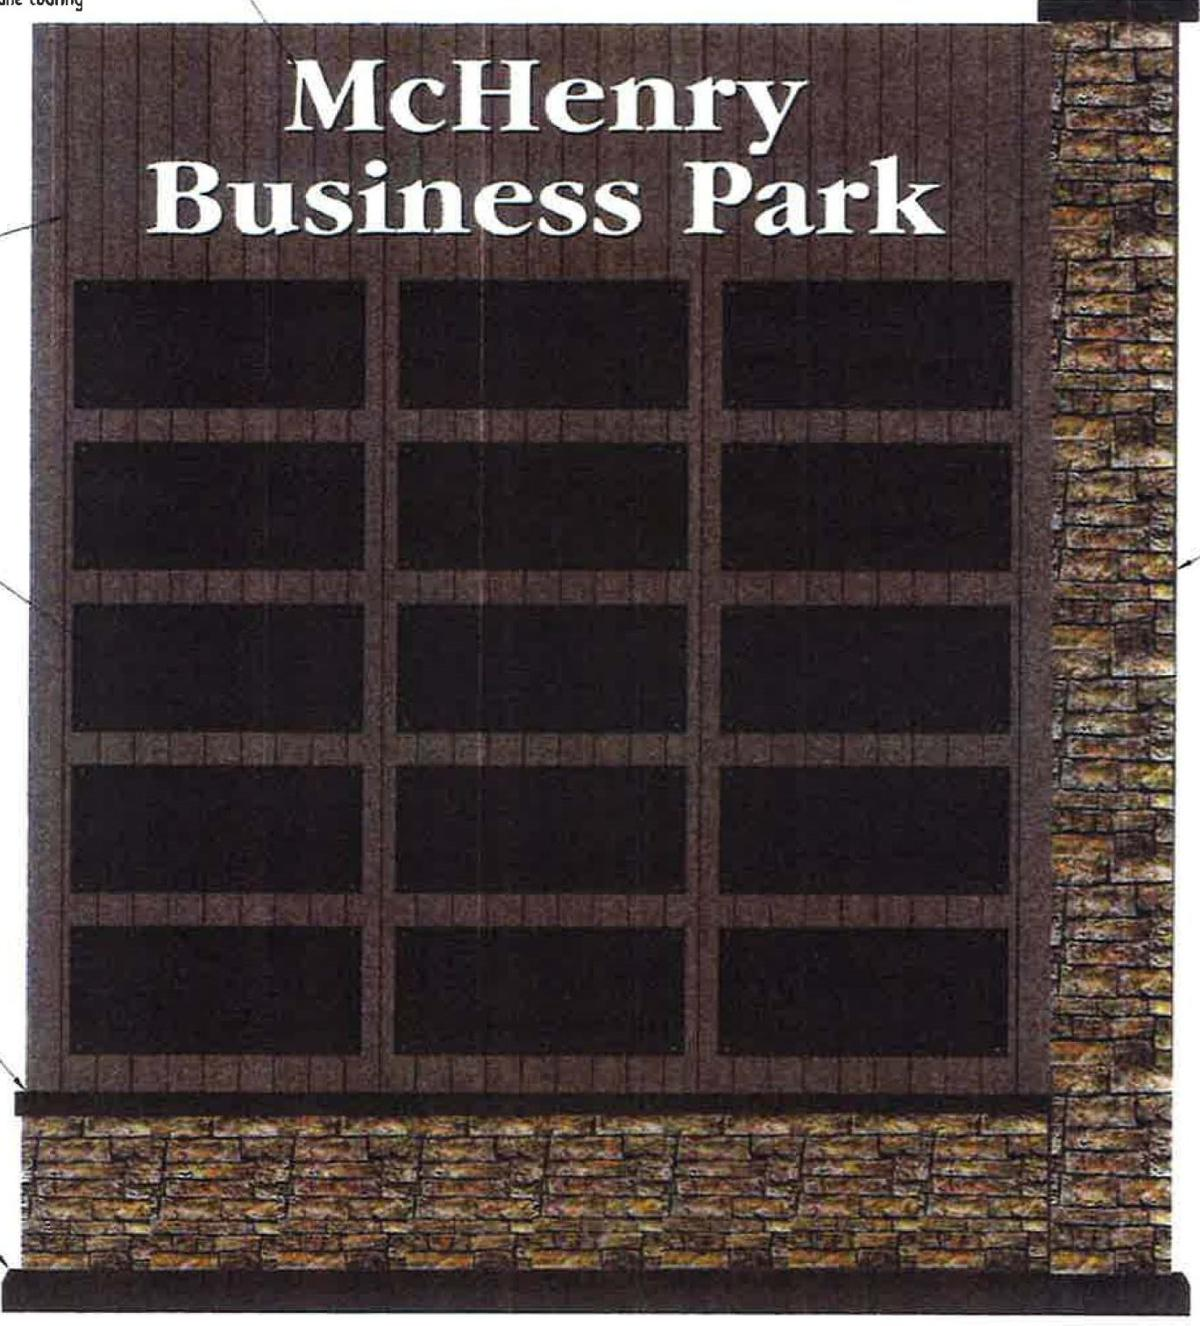 McHenry Business Park sign